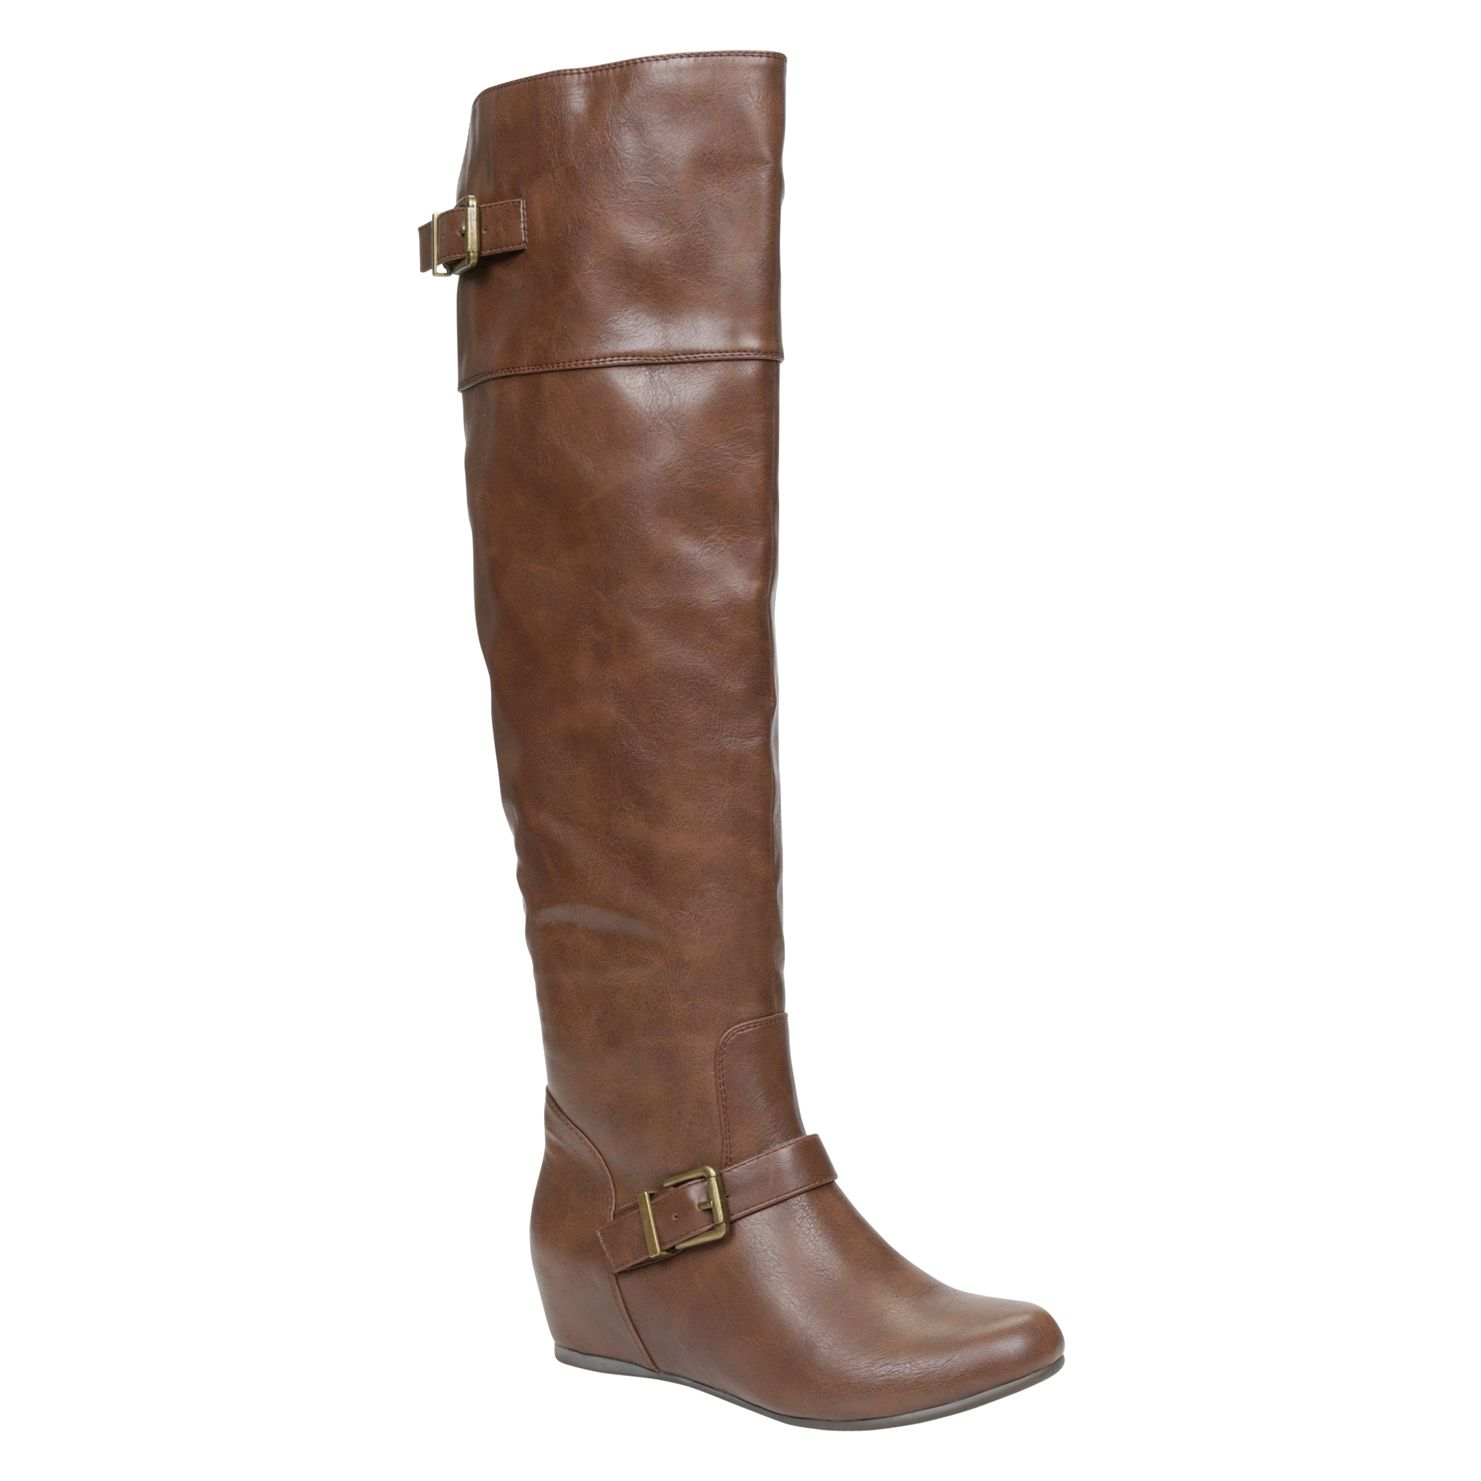 Tasha knee high wedge boots